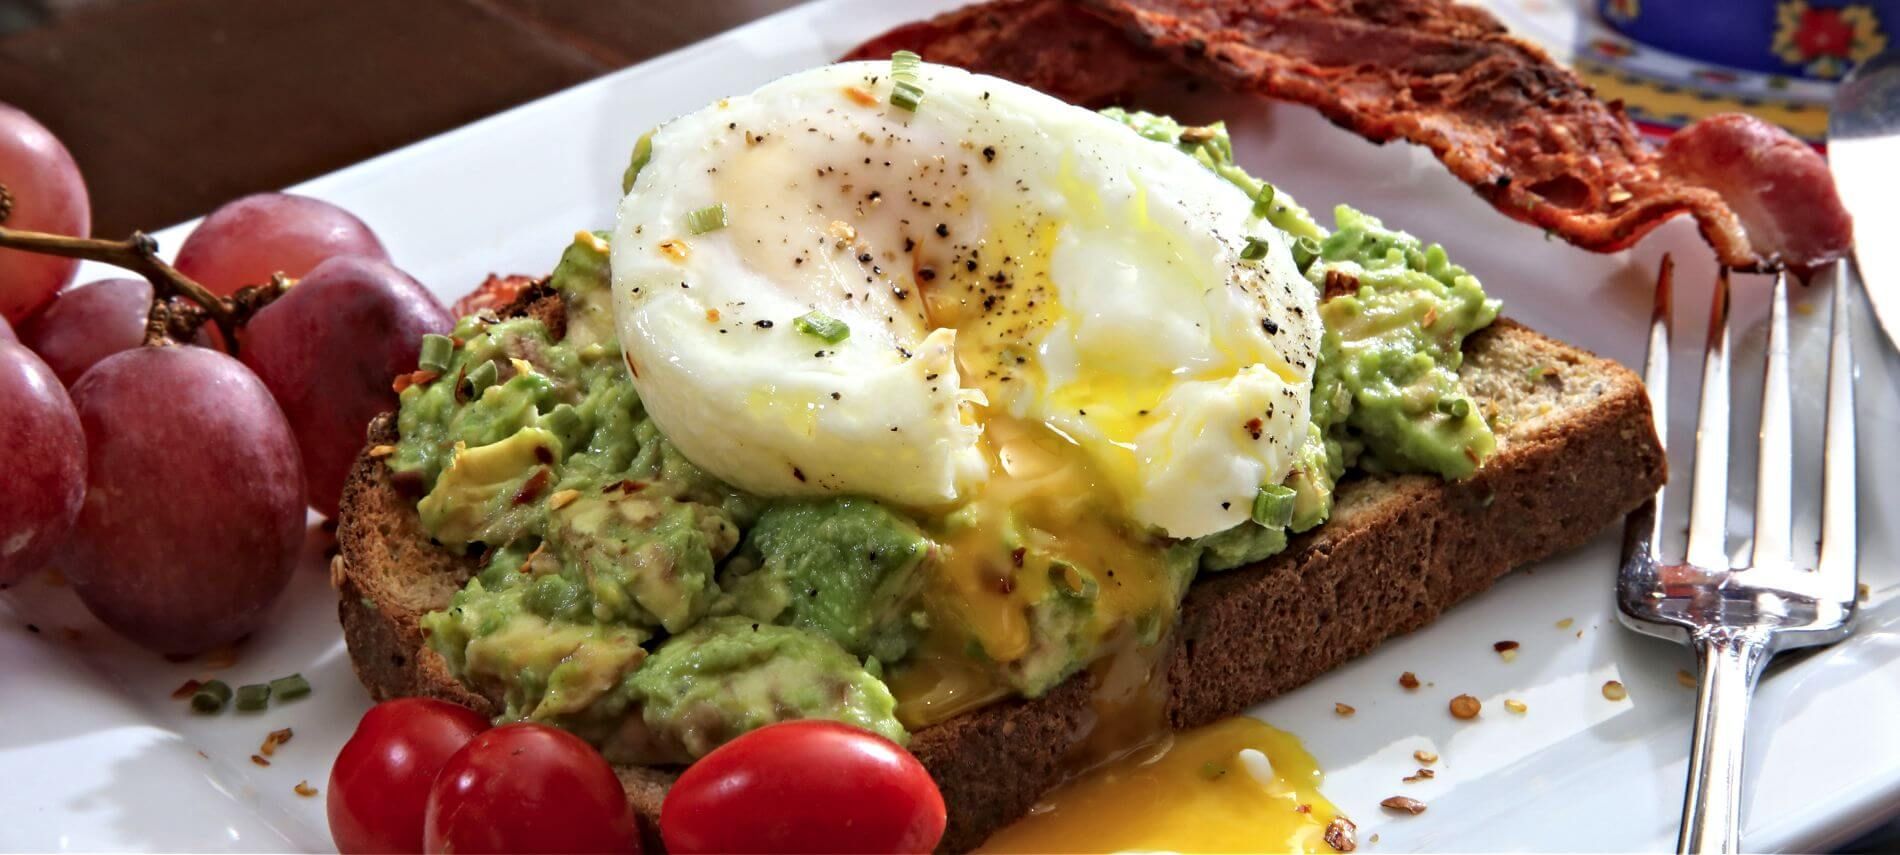 Avocado toast with a poached egg and bacon